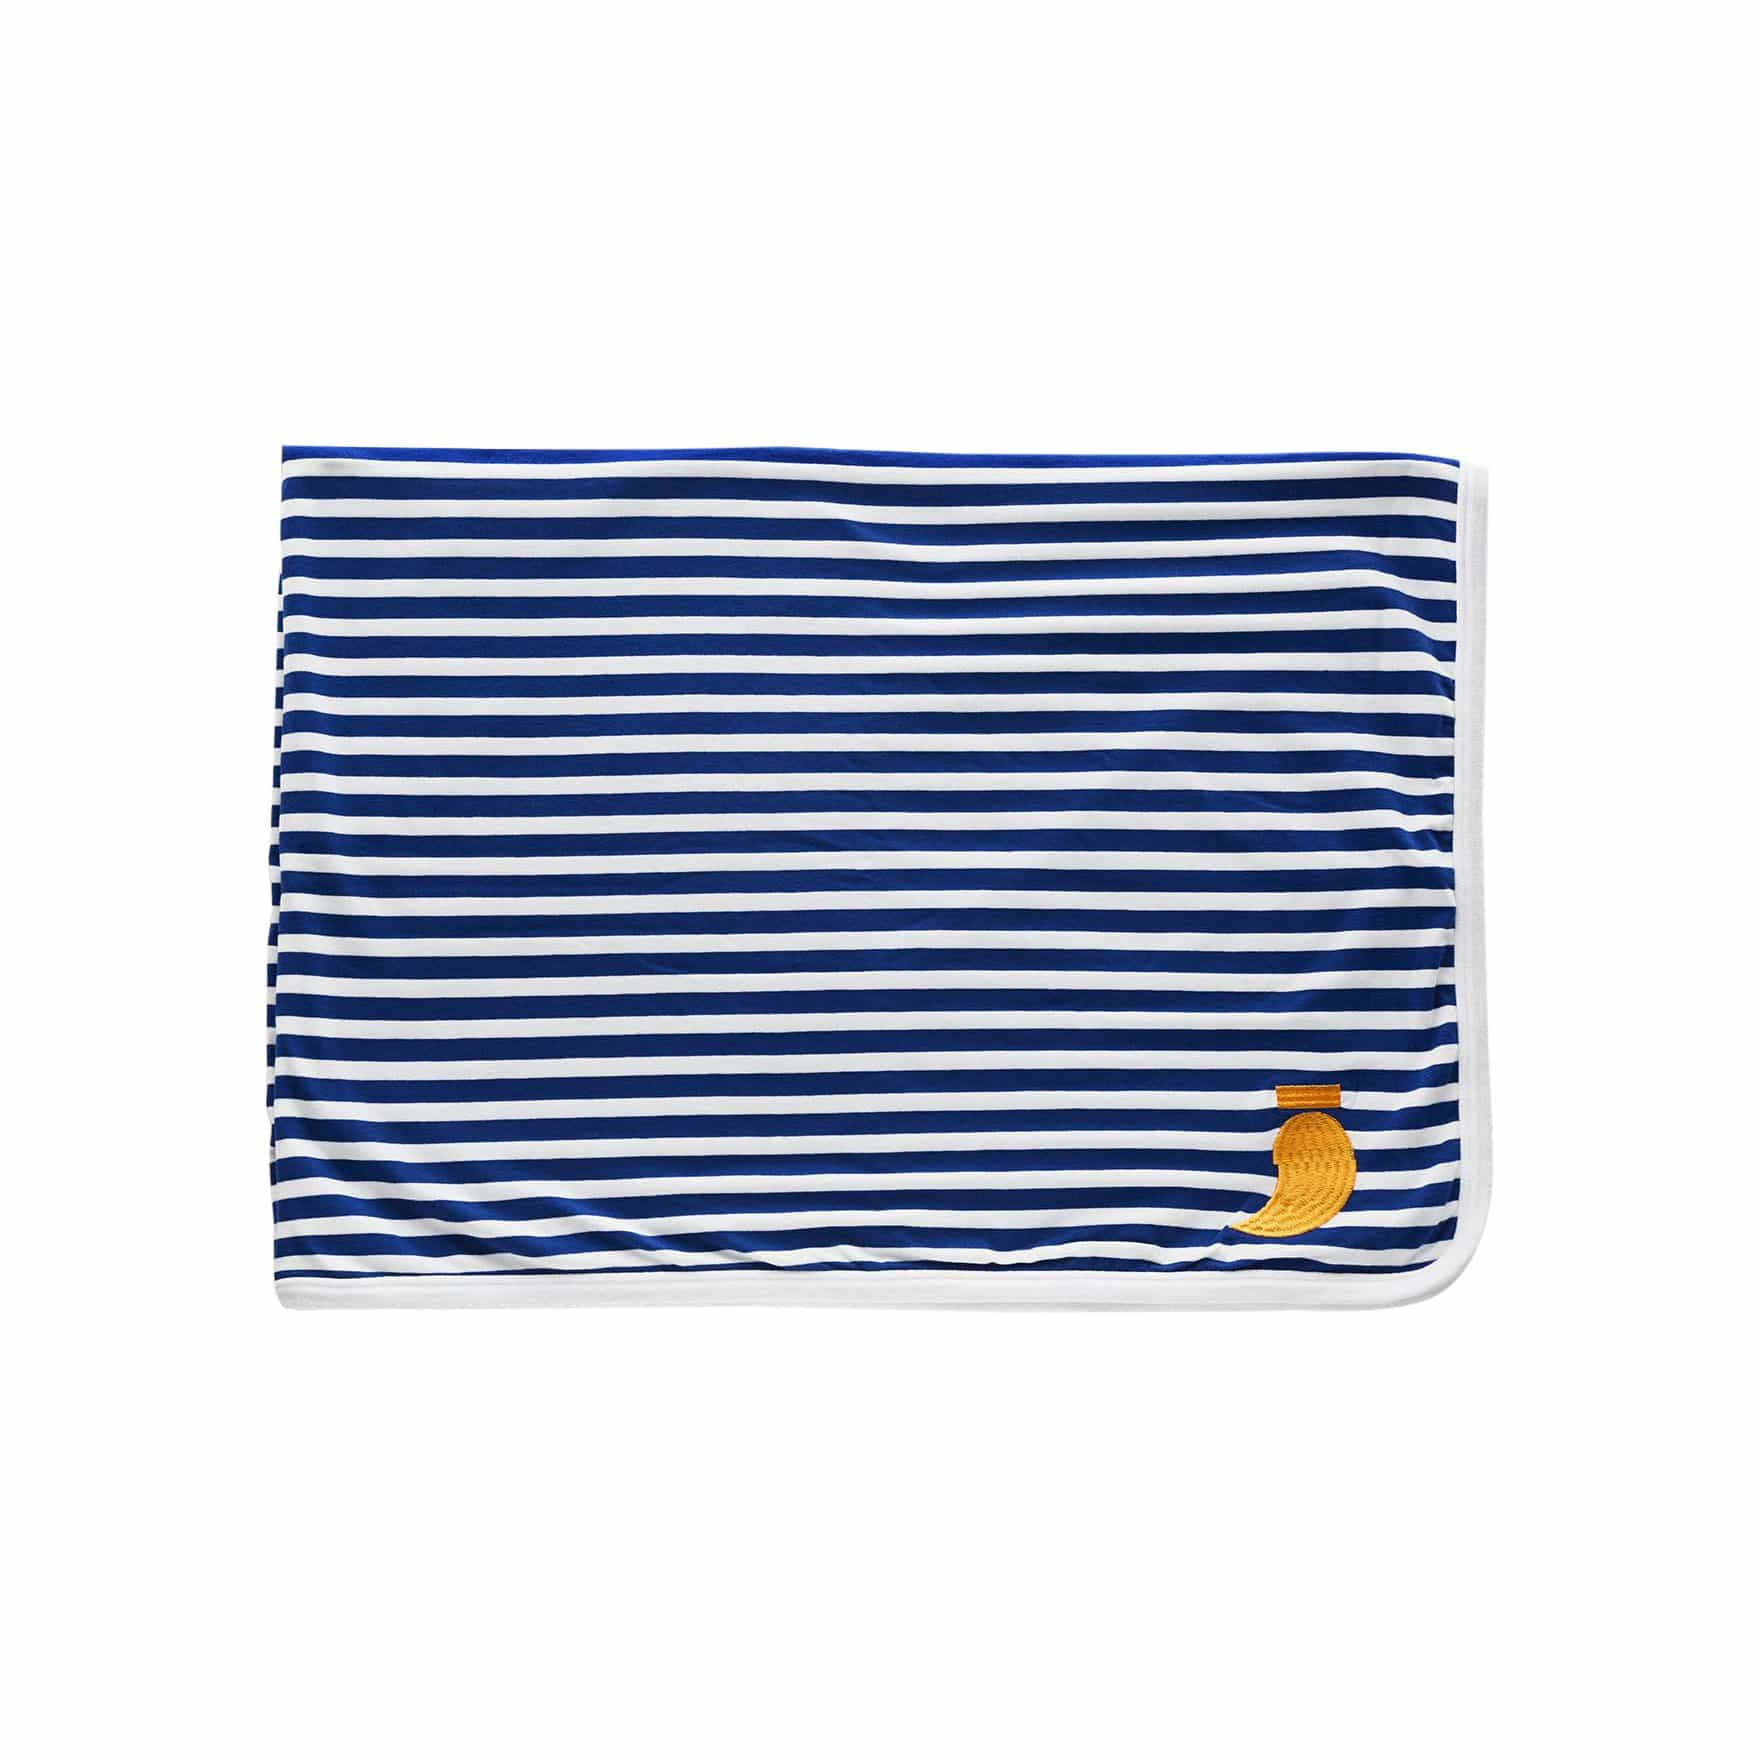 The Painter's Wife Sleep Double Sided Blue Striped Blanket